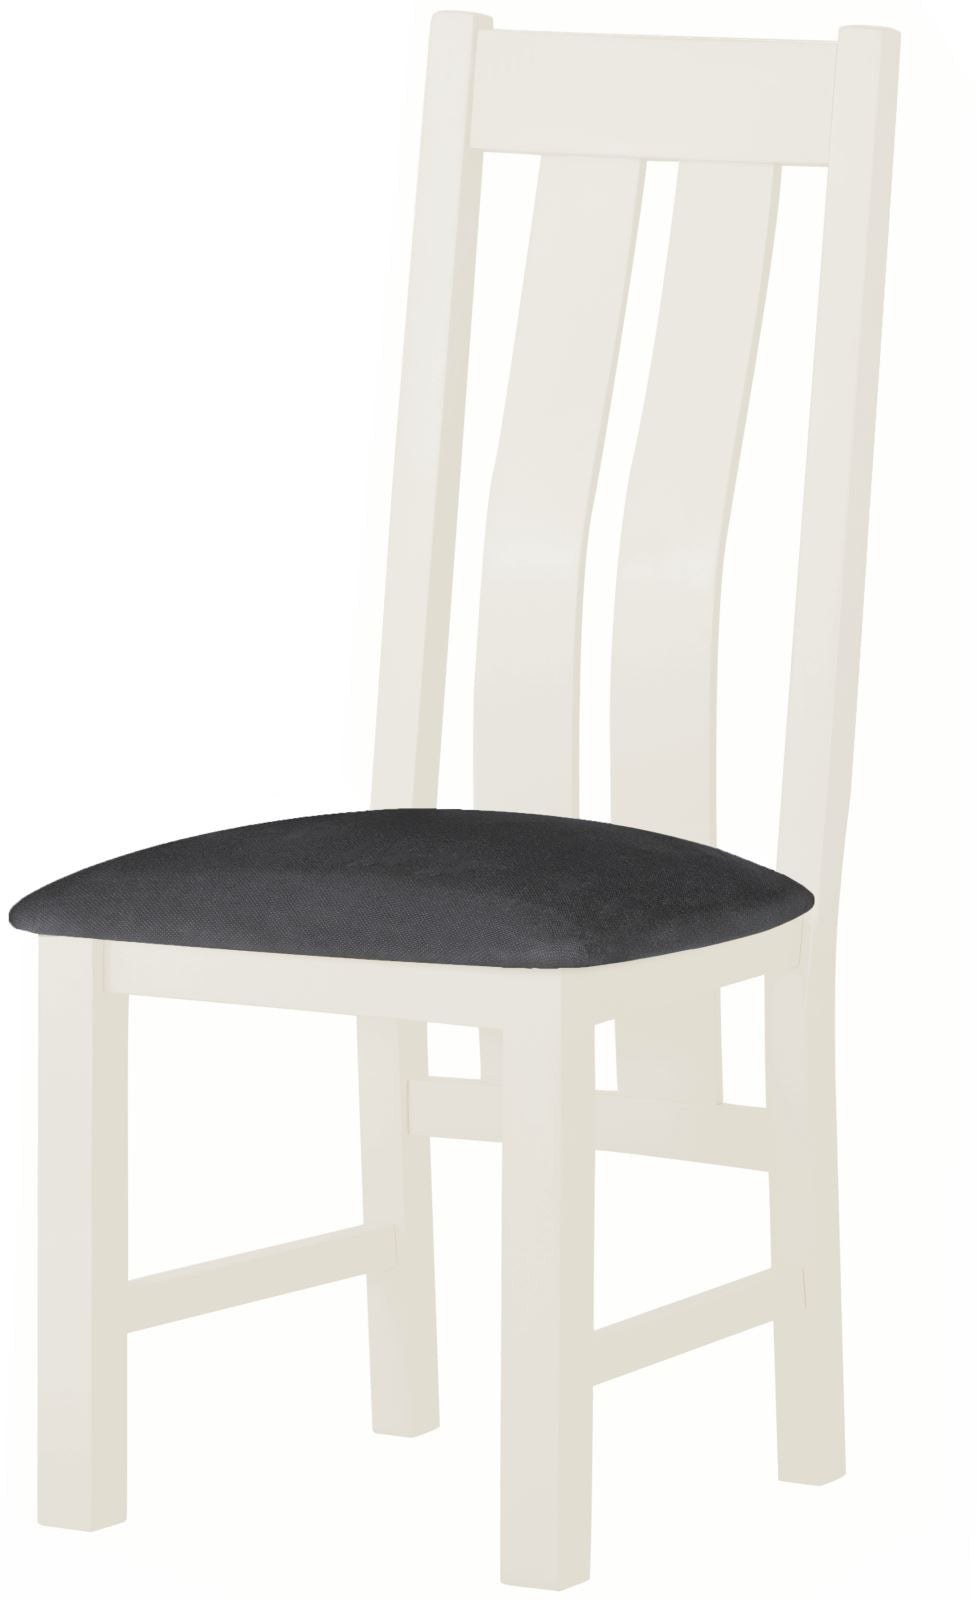 Cottage Dining Chair White - Tylers Department Store